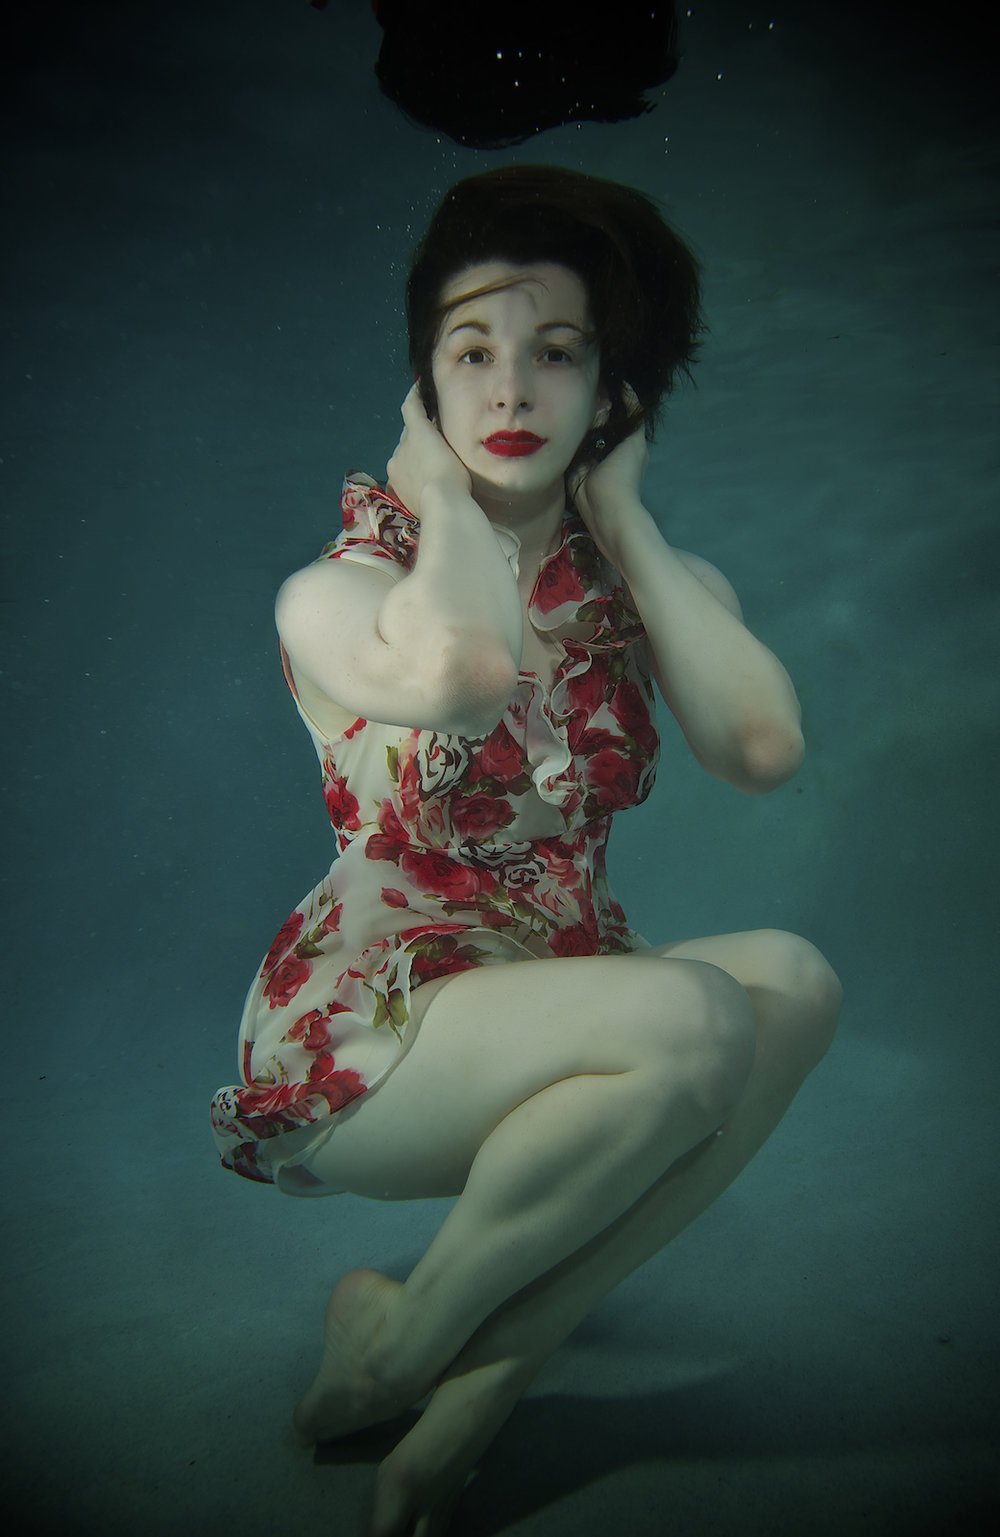 Underwater portrait of Marielle in New Orleans, Model, singer, and actor, Kimberly Kaye, photographed by New Orleans based photographer, Marc Pagani